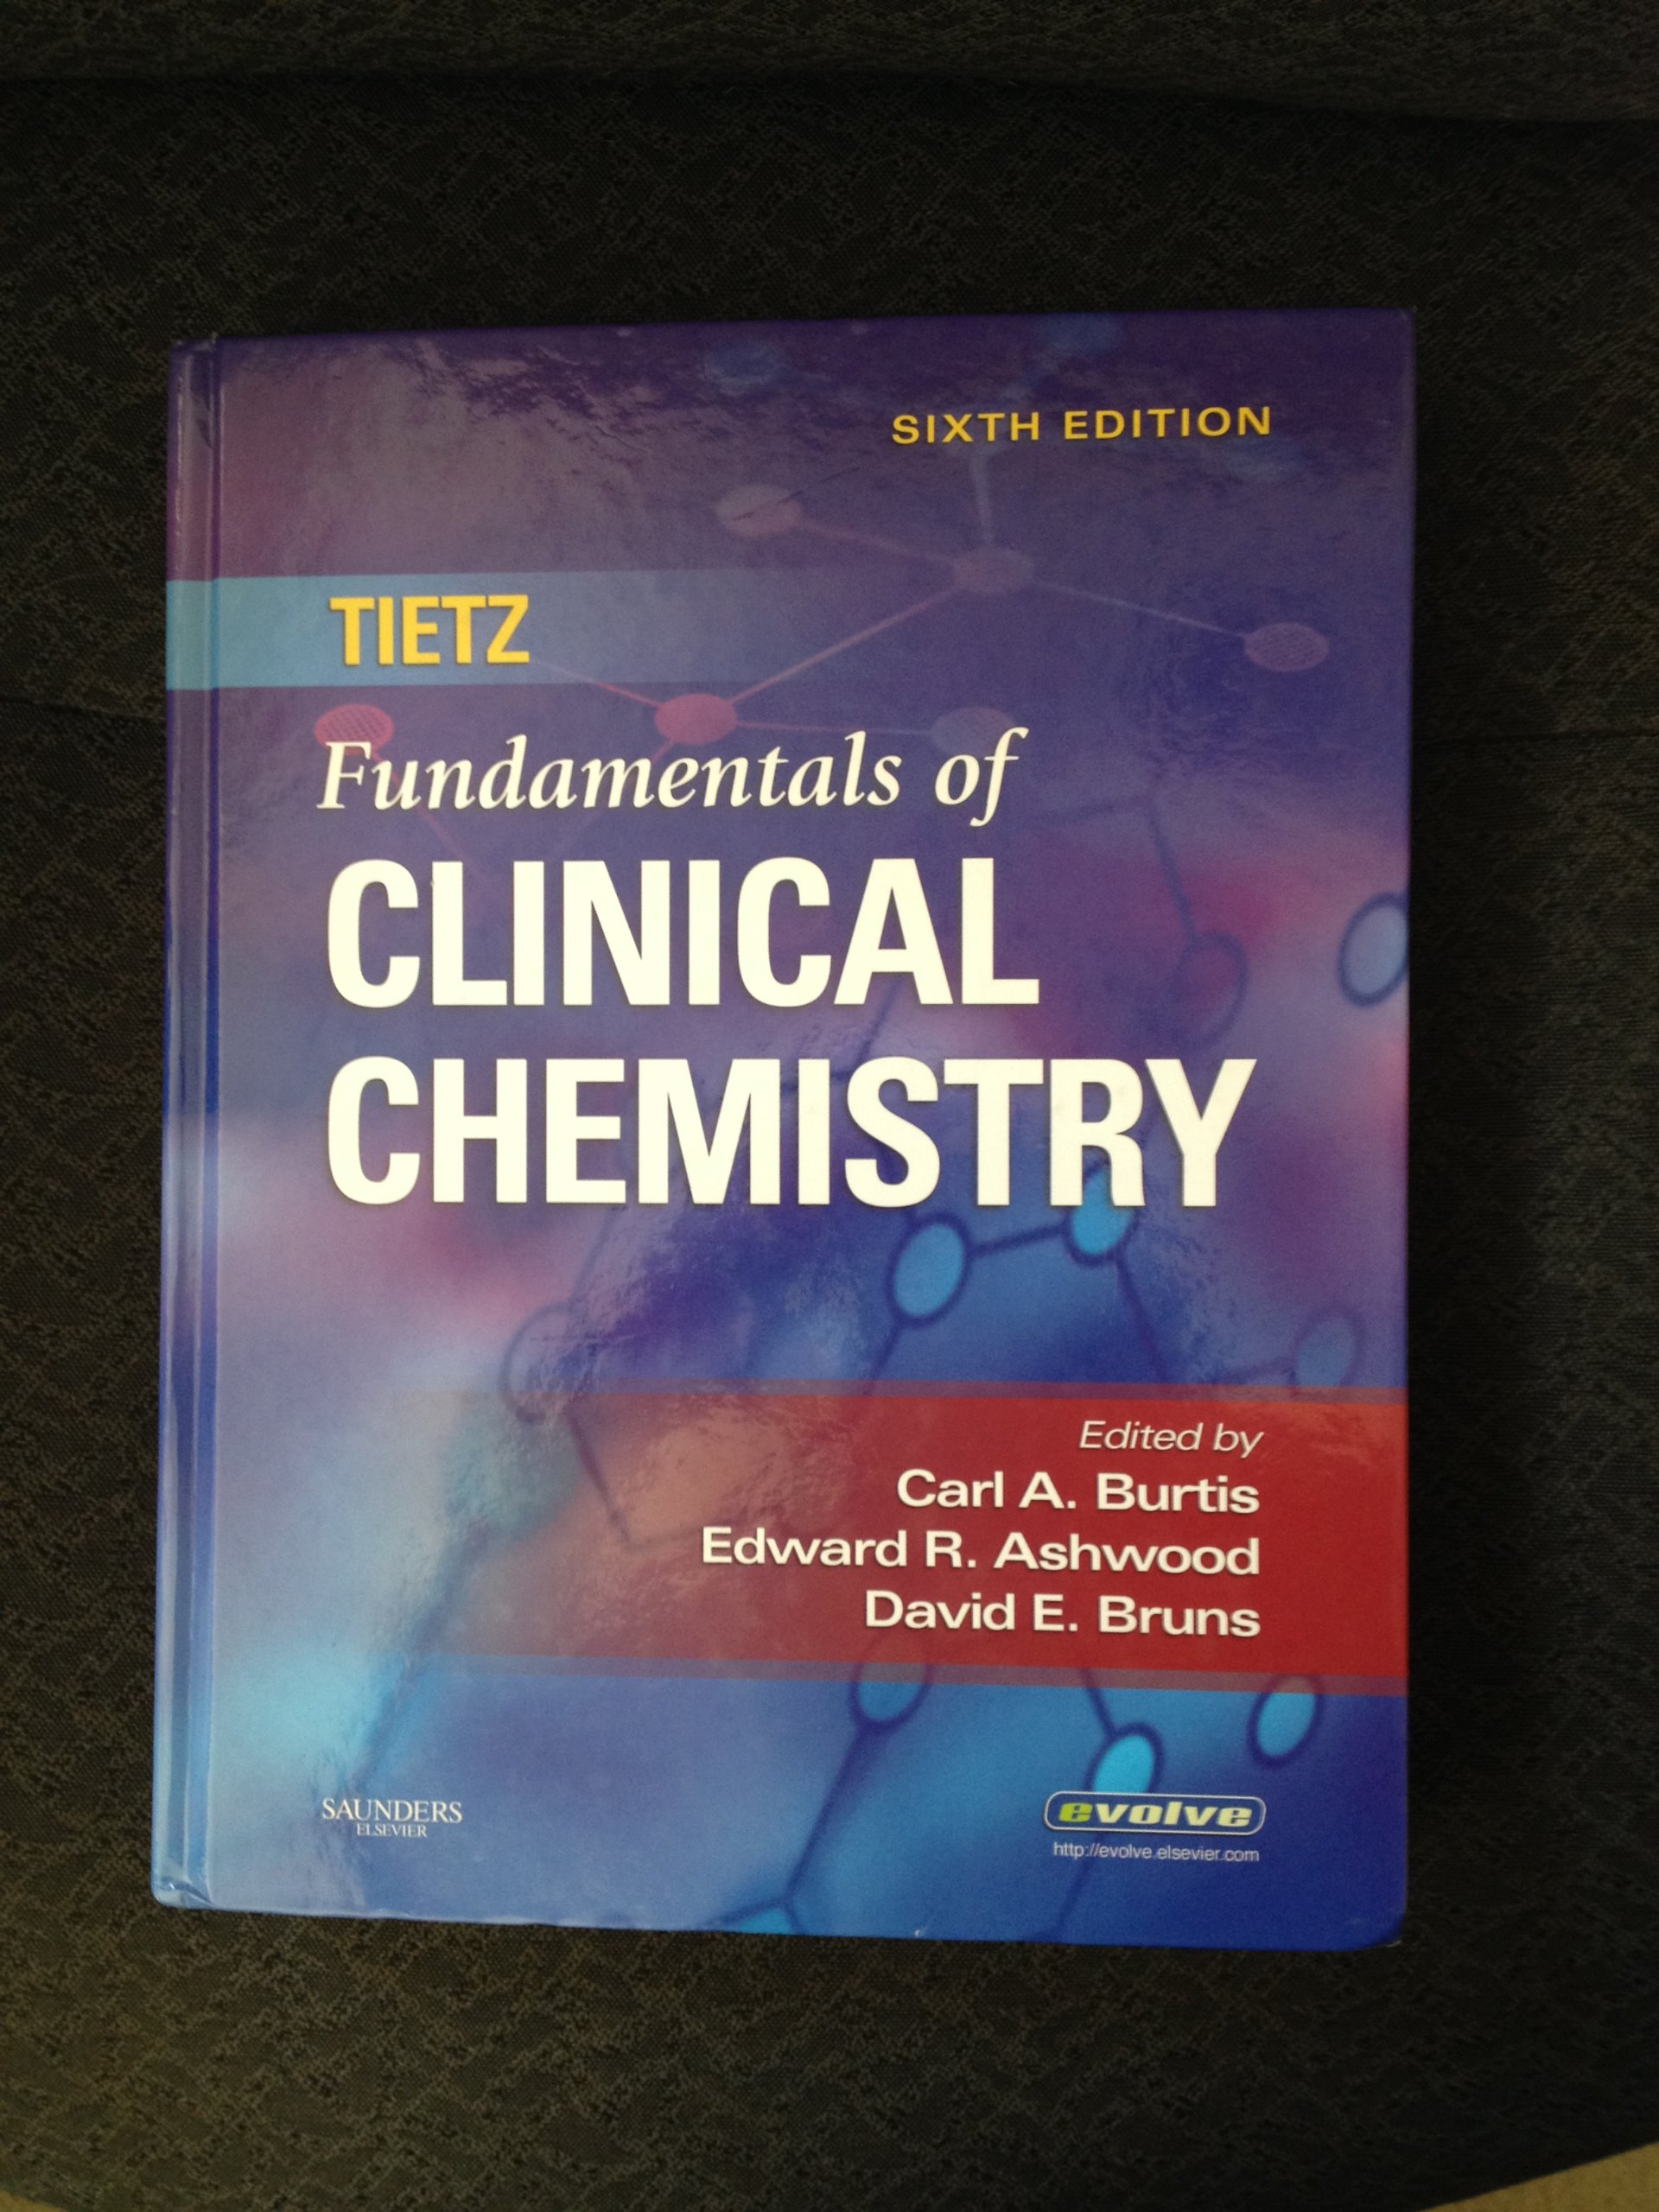 Tietz Textbook Of Clinical Chemistry Pdf